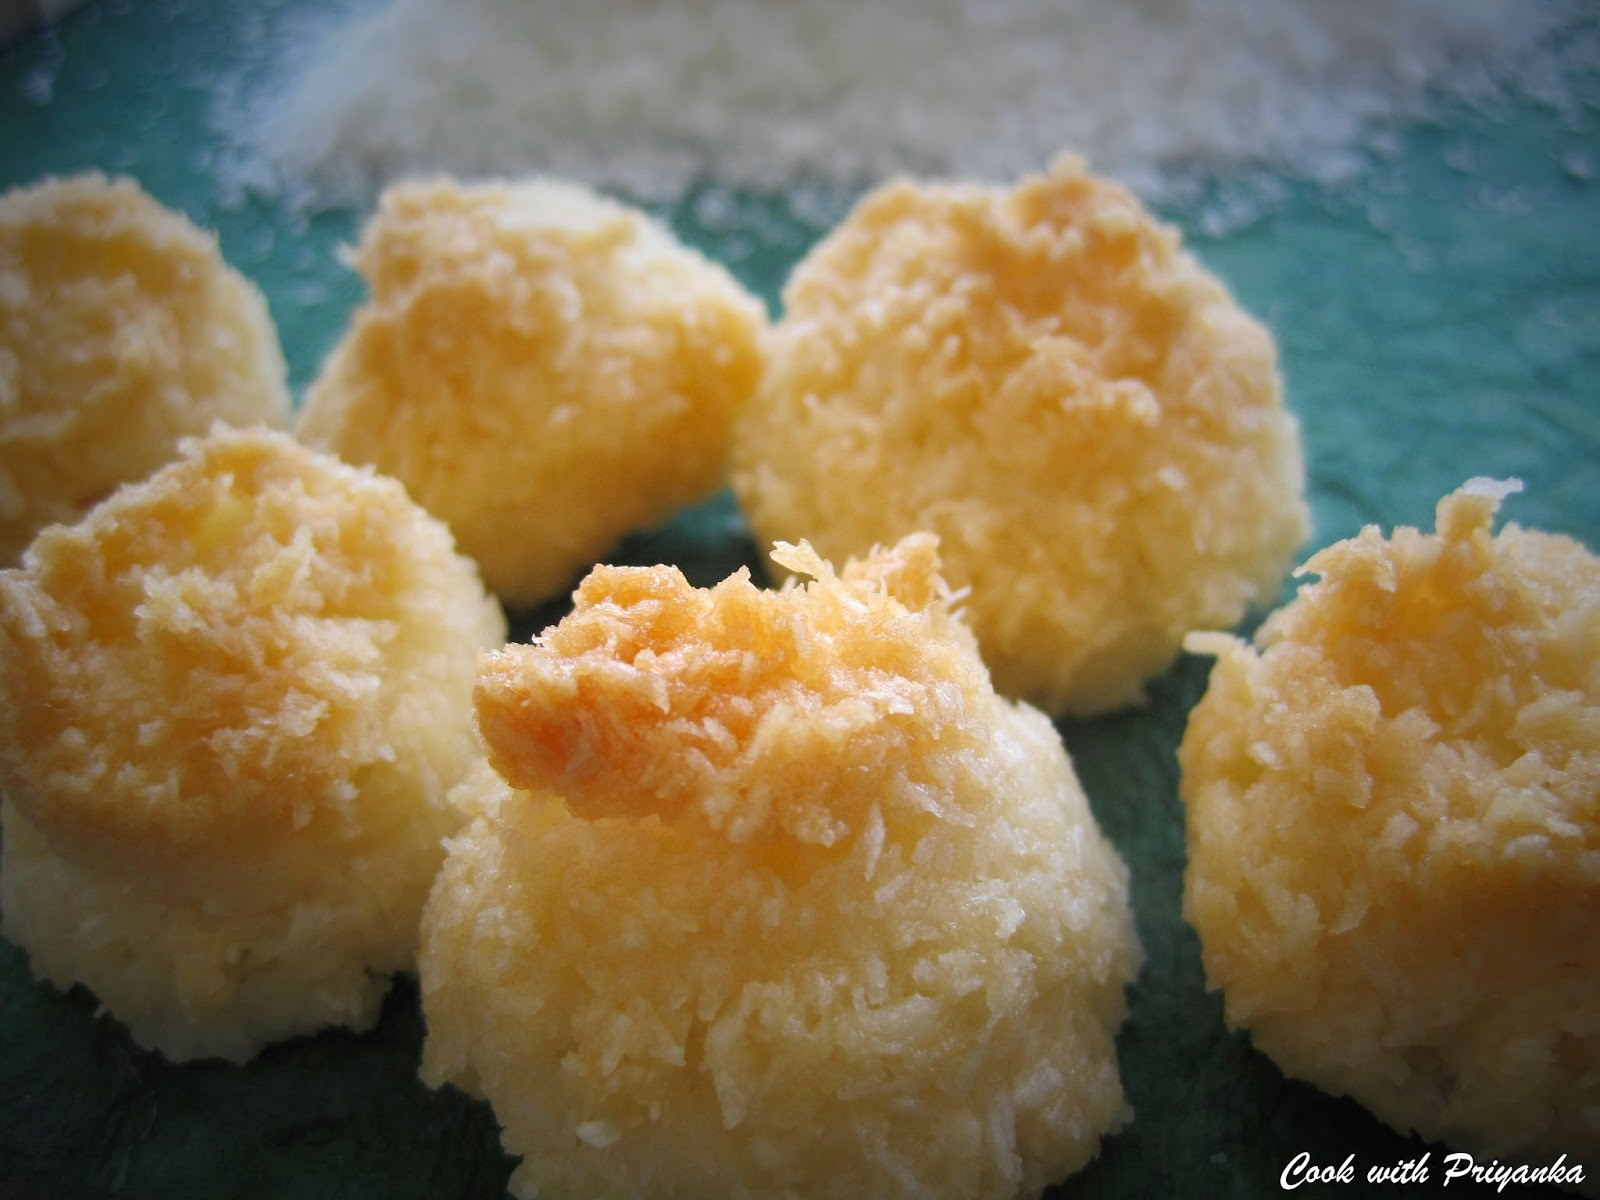 http://cookwithpriyankavarma.blogspot.co.uk/2014/05/coconut-macaroons.html